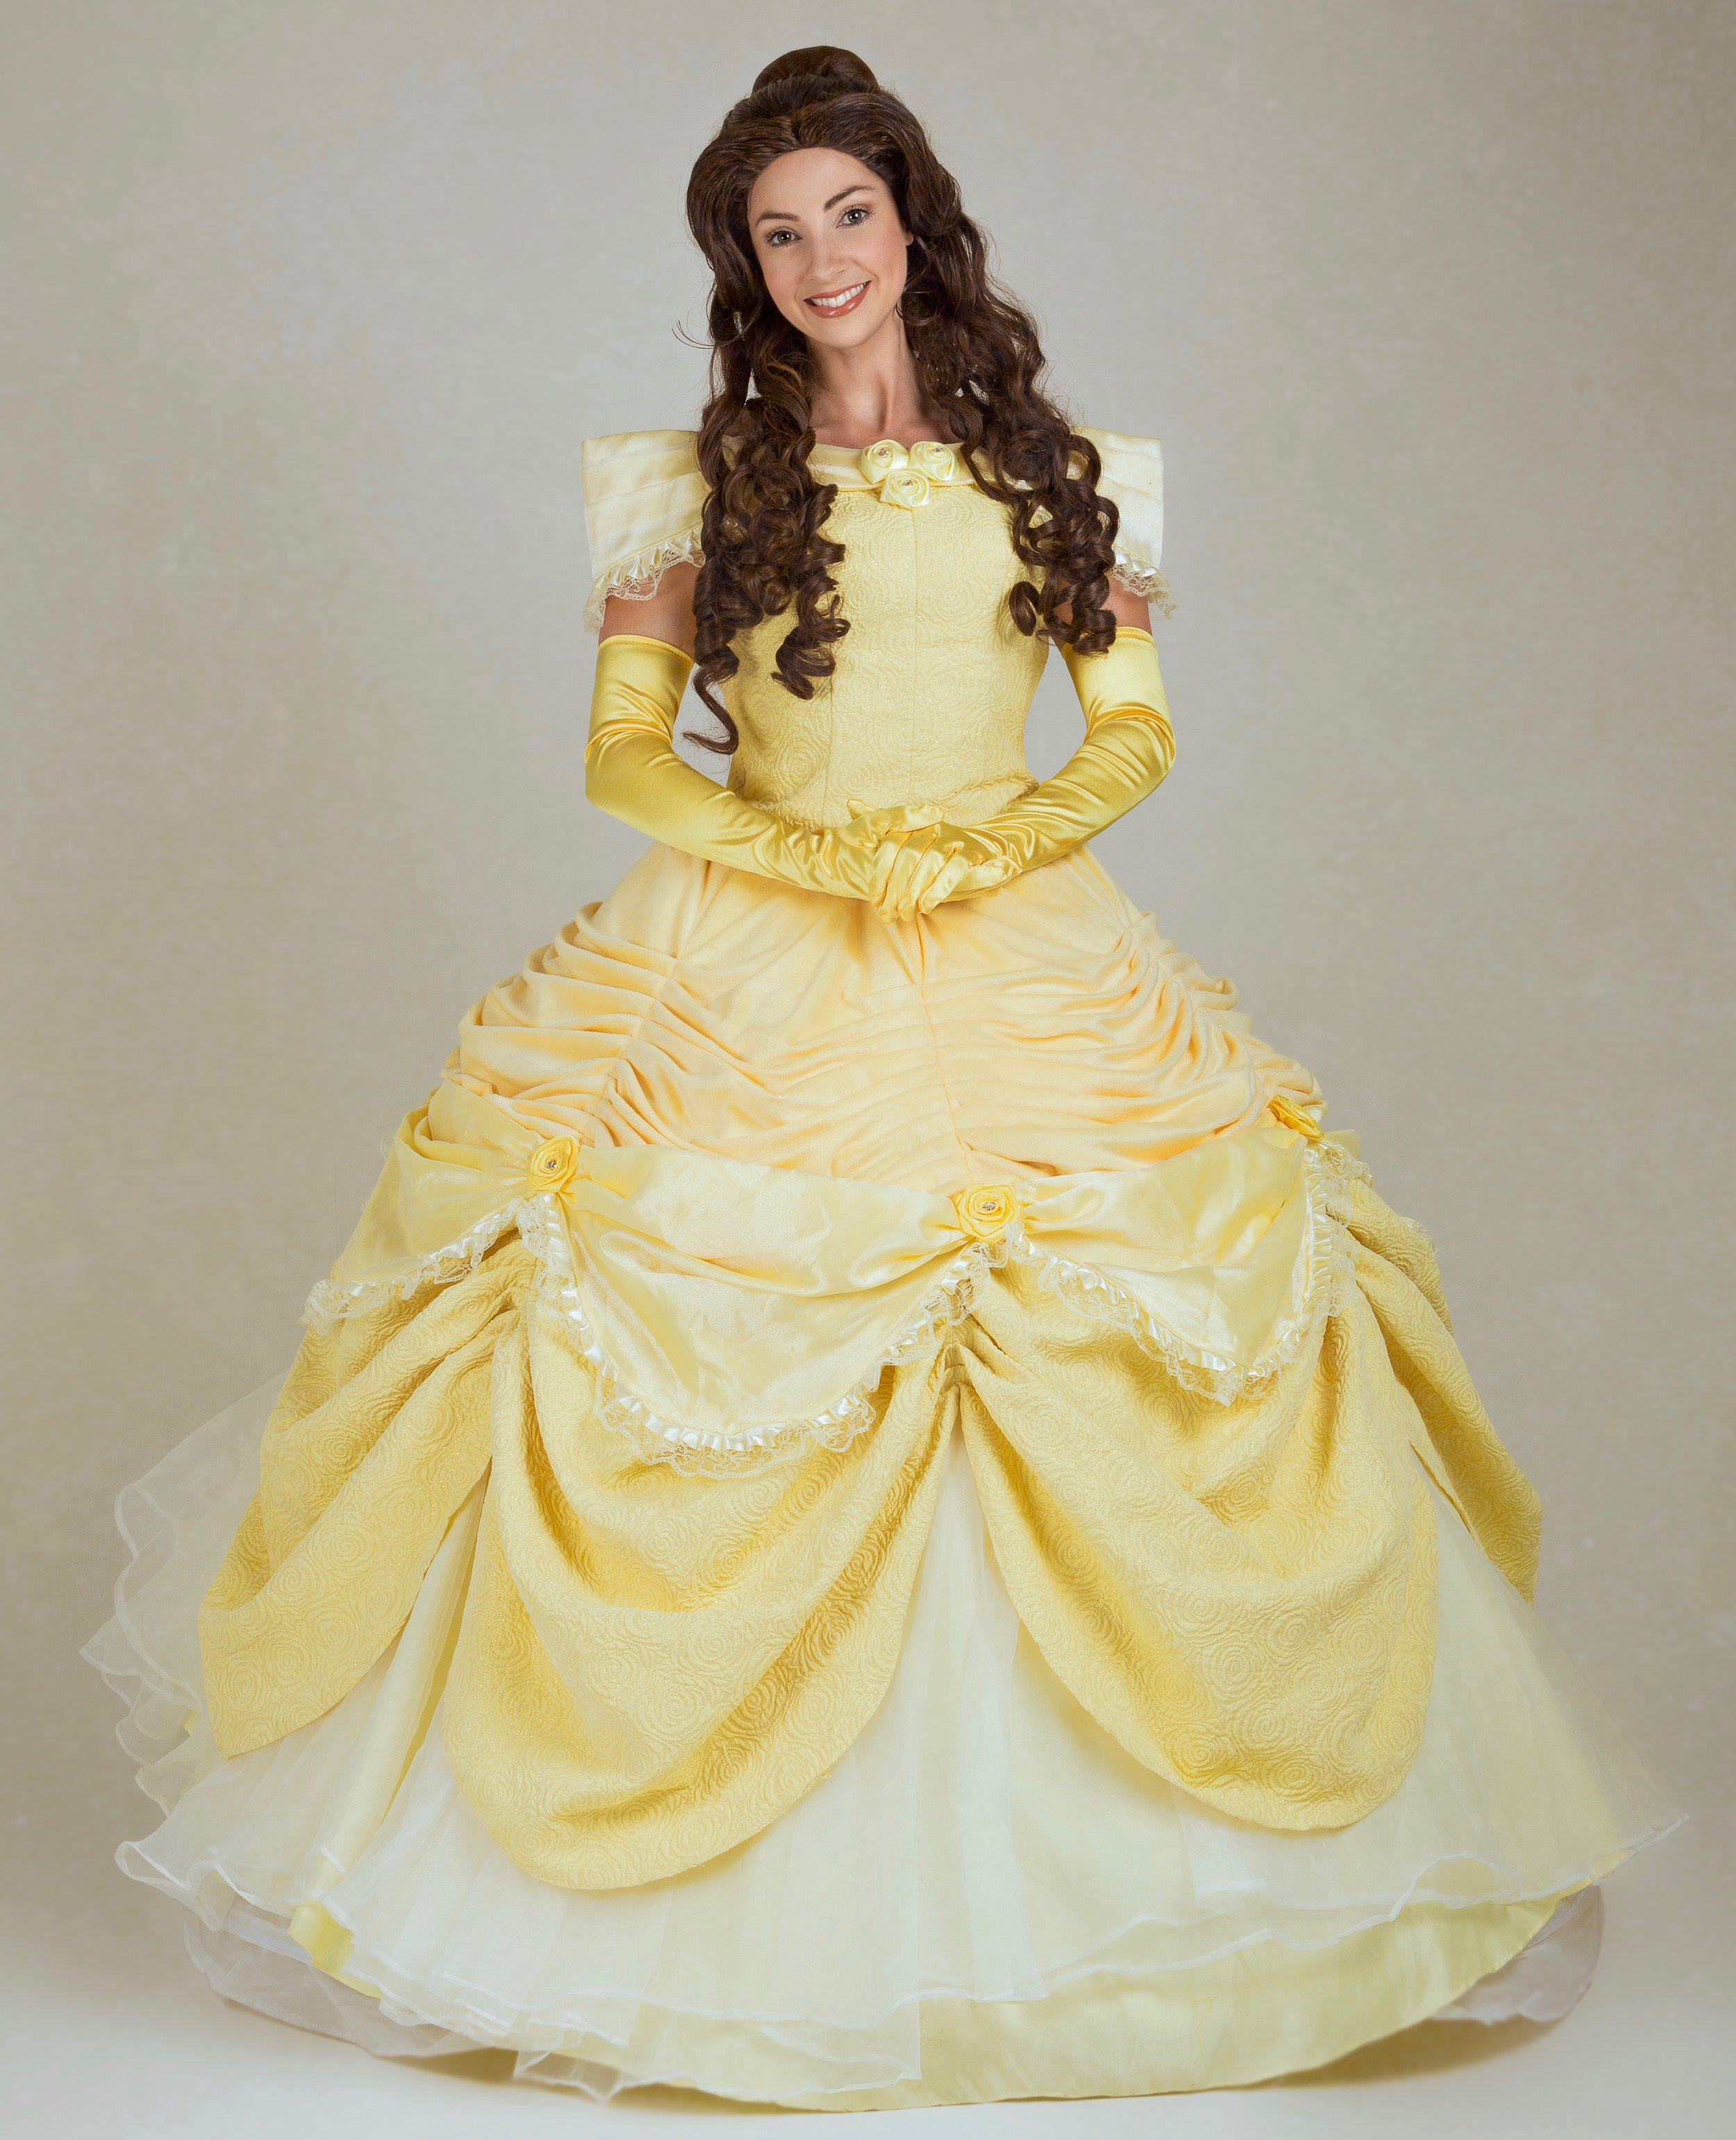 Belle   This princess wants to be your guest! Belle loves to read and share her stories of how she found true love. Your little princess will be the Belle of the Ball too!